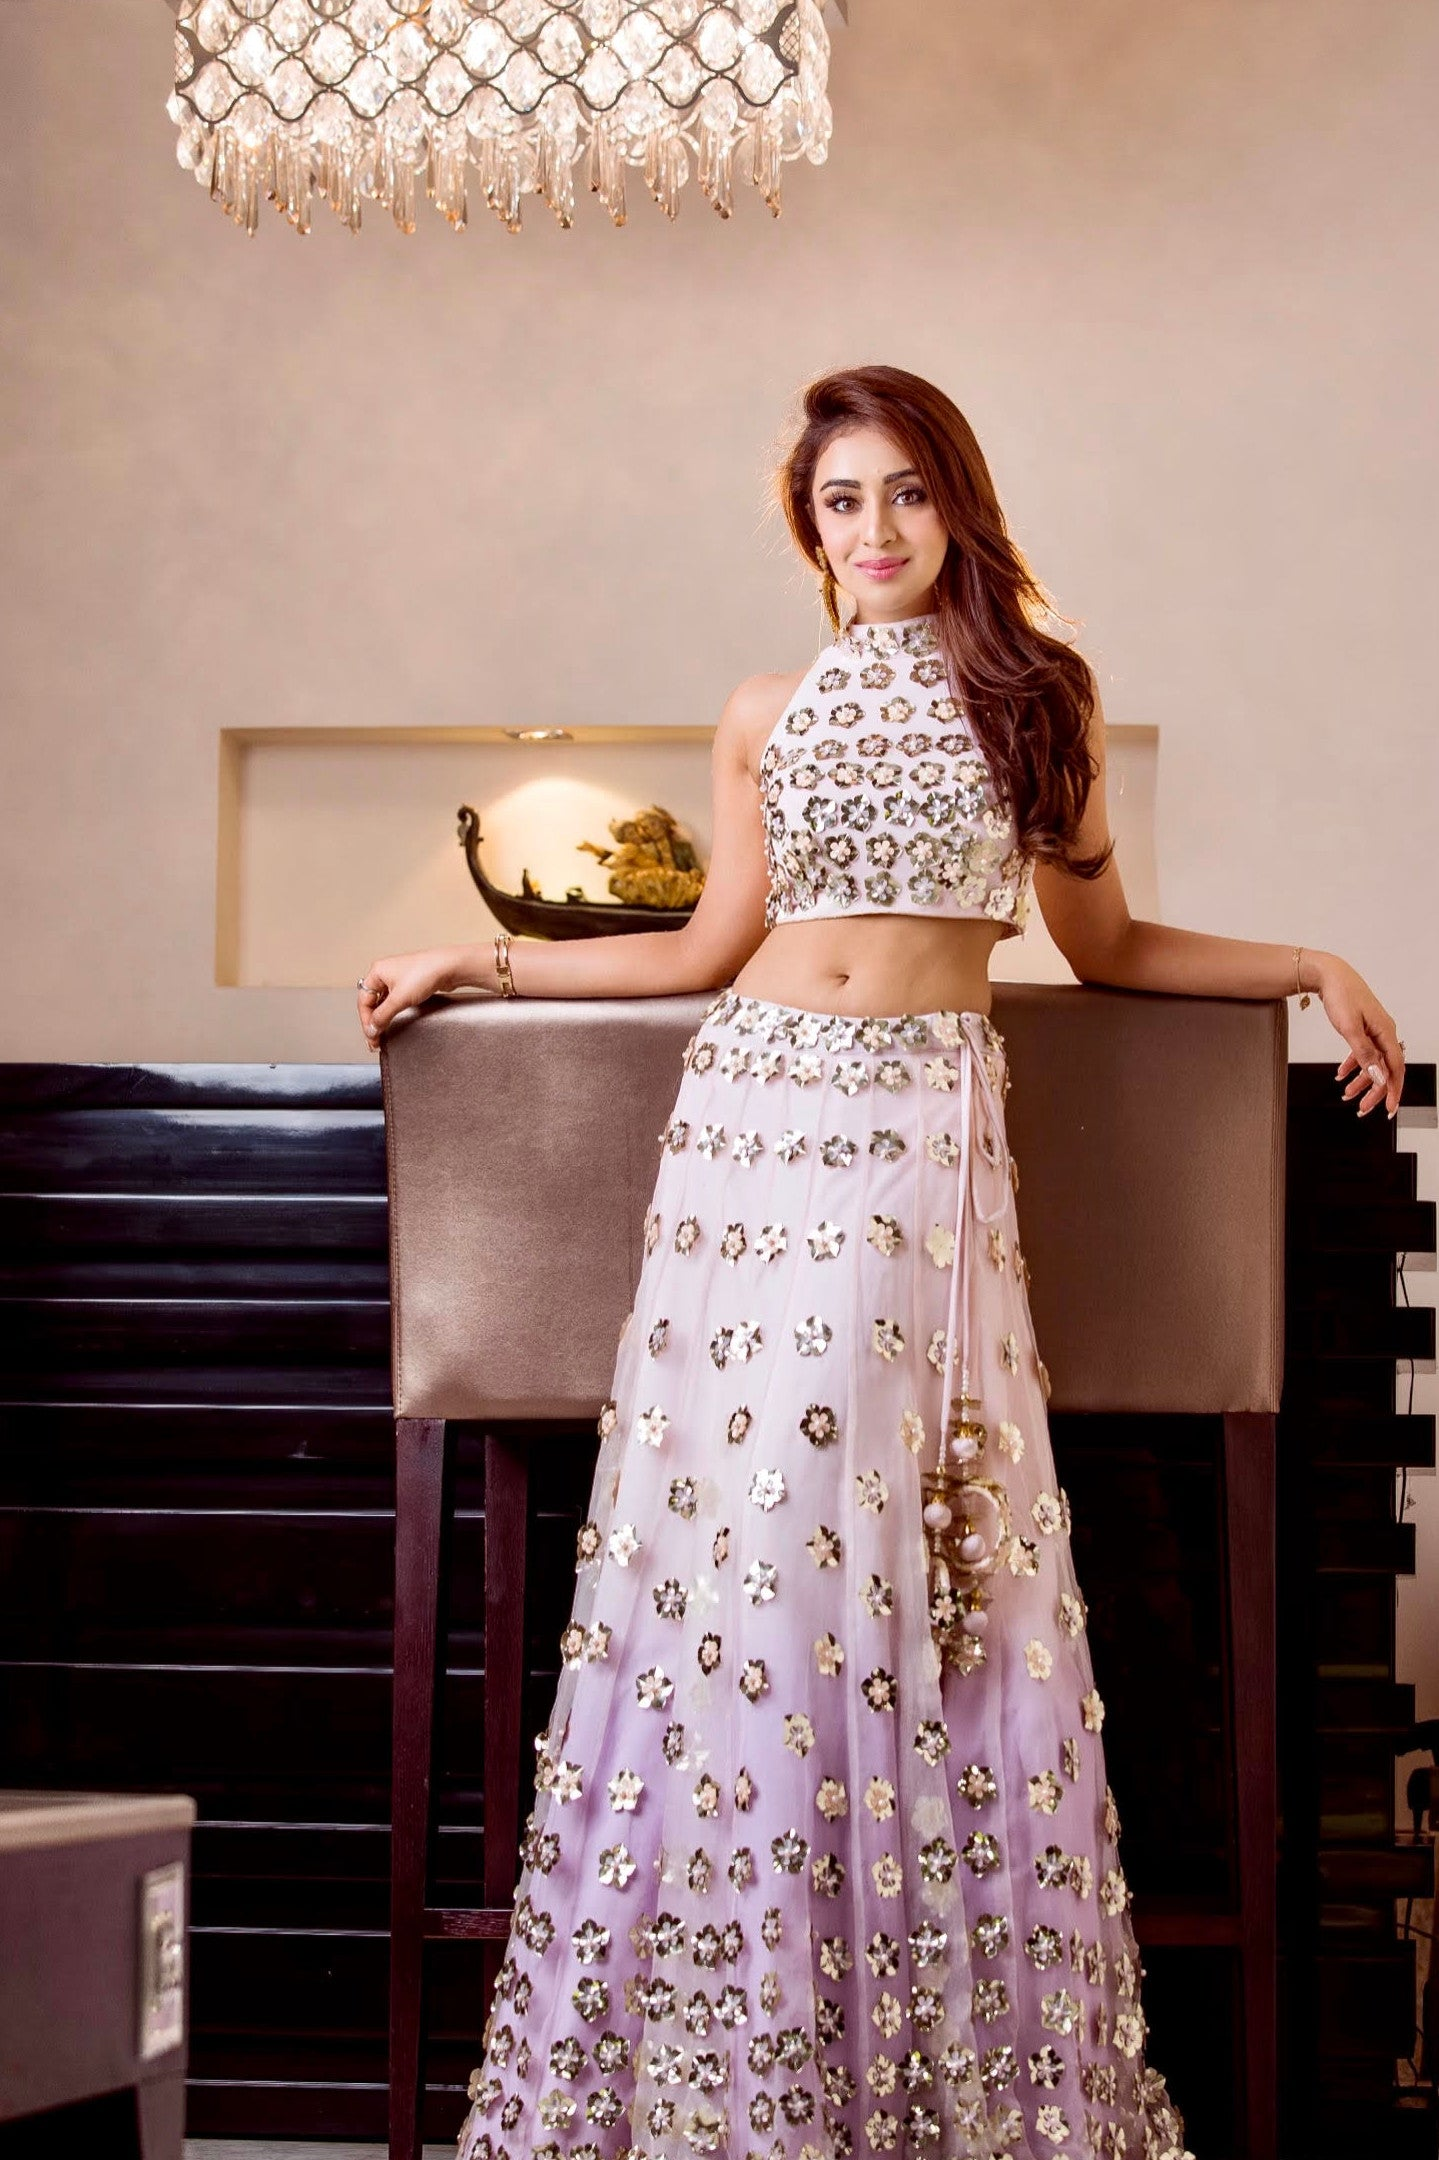 Manvi-Kapoor-Celebrity-Musskan-Sethi-wearing-Mermaid-Lehenga-Ethnic-Indian-Womenswear